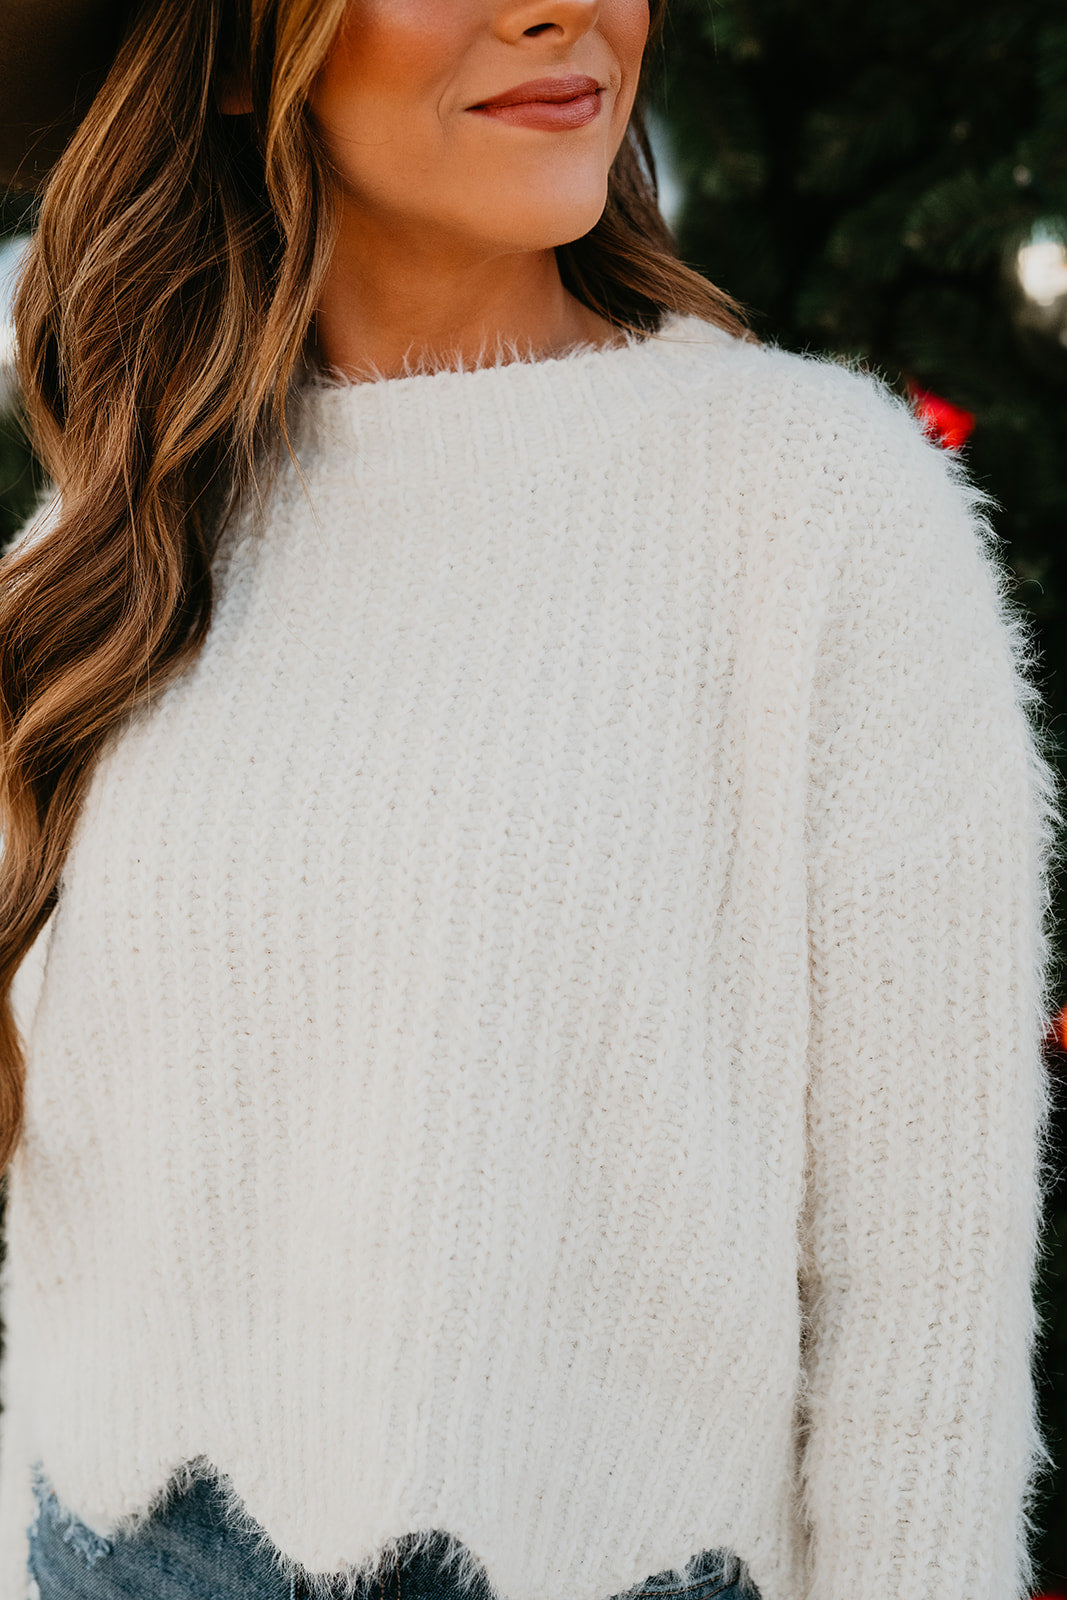 THE KRISTEN SCALLOP SWEATER IN IVORY